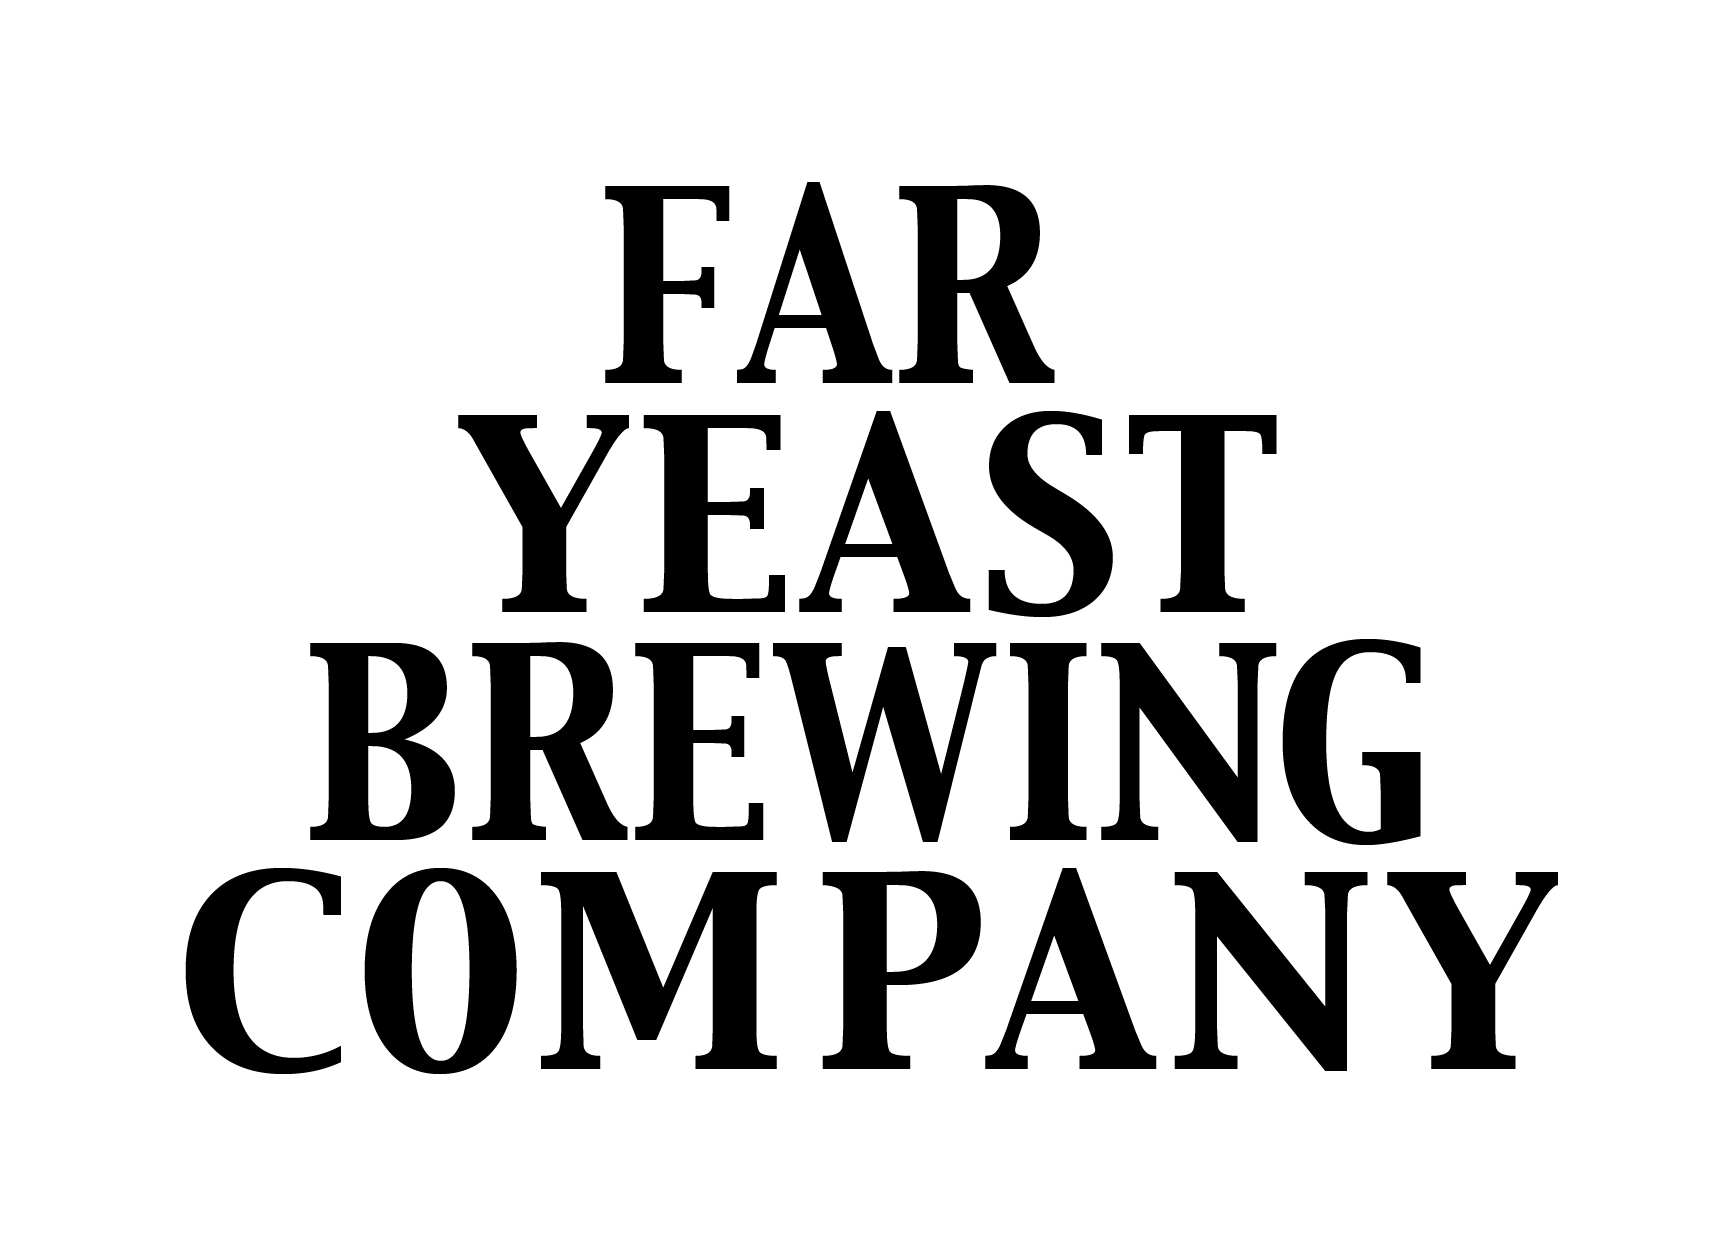 Far East Brewing